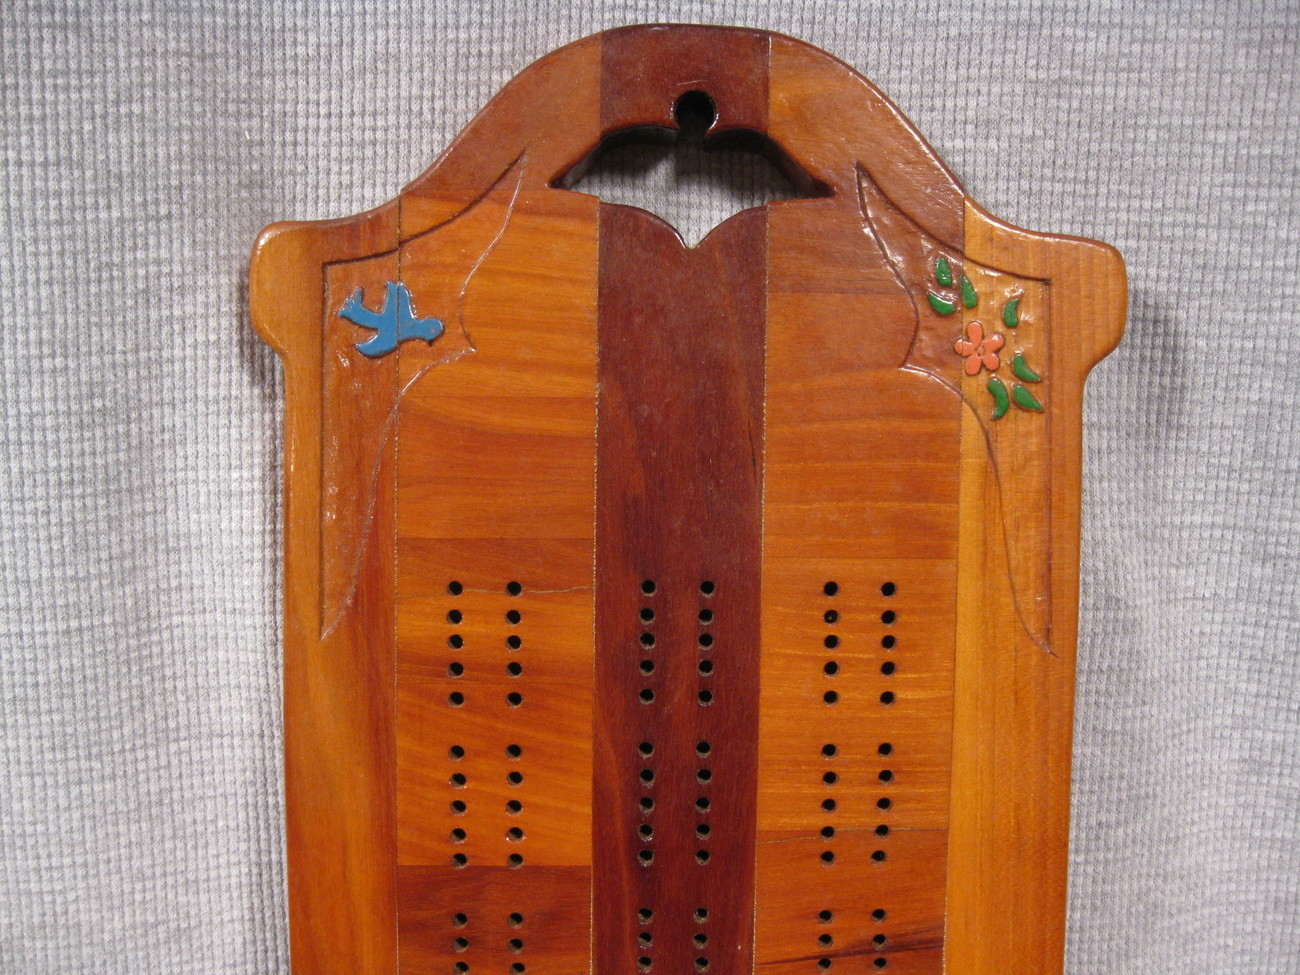 Handcrafted Inlaid Wood Cribbage Board with Pegs